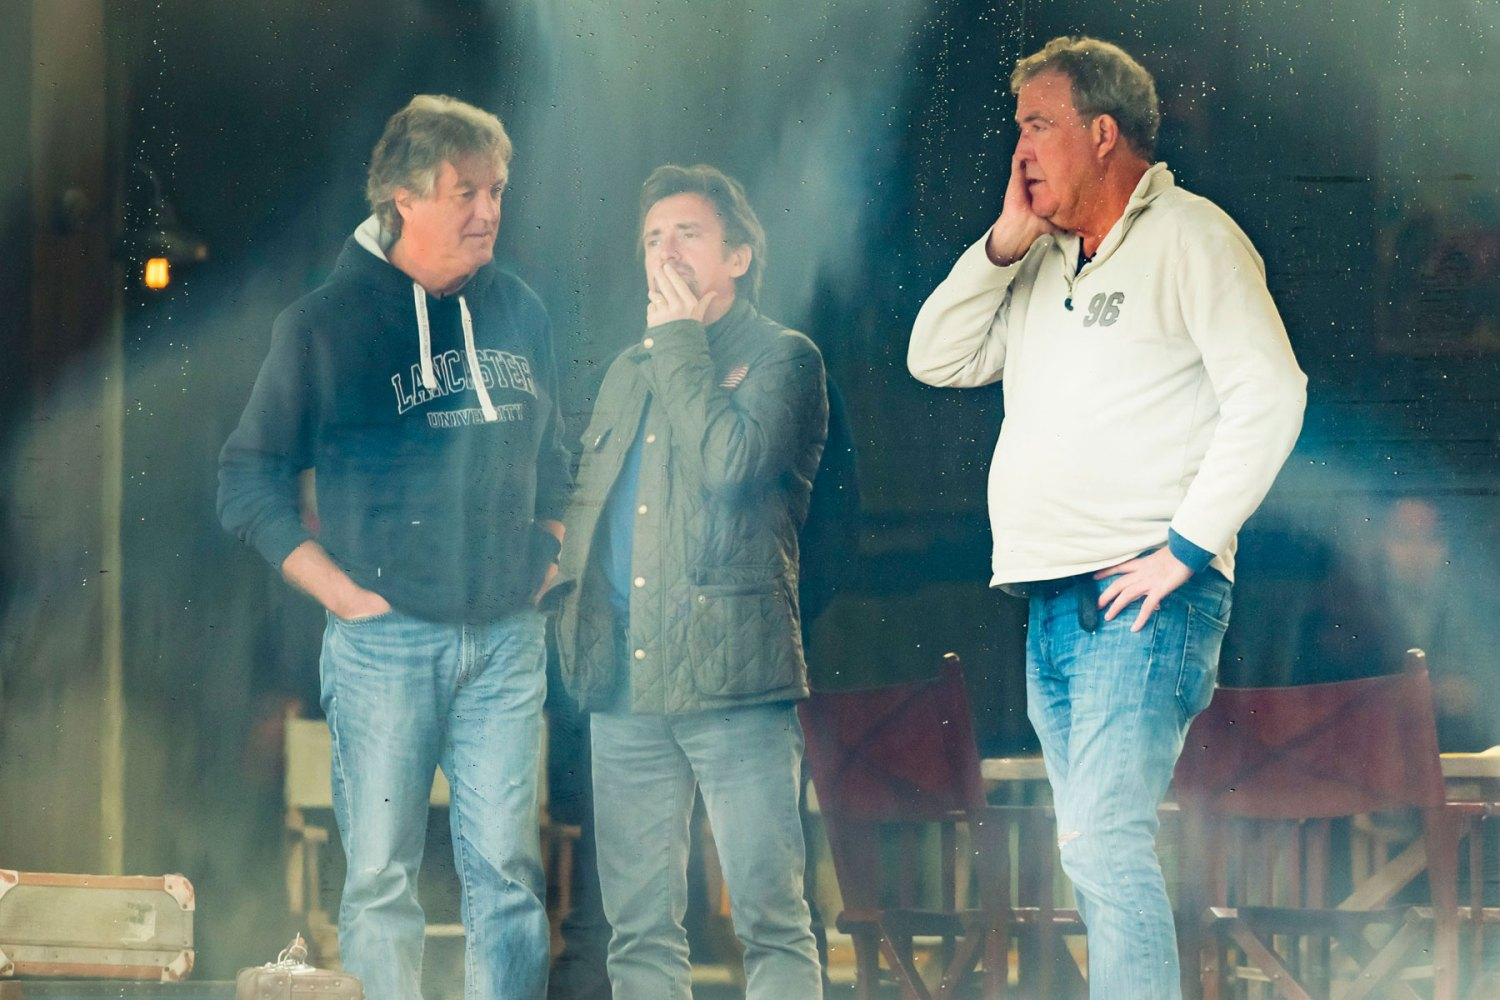 The Grand Tour: Clarkson, Hammond and May filming in Yorkshire